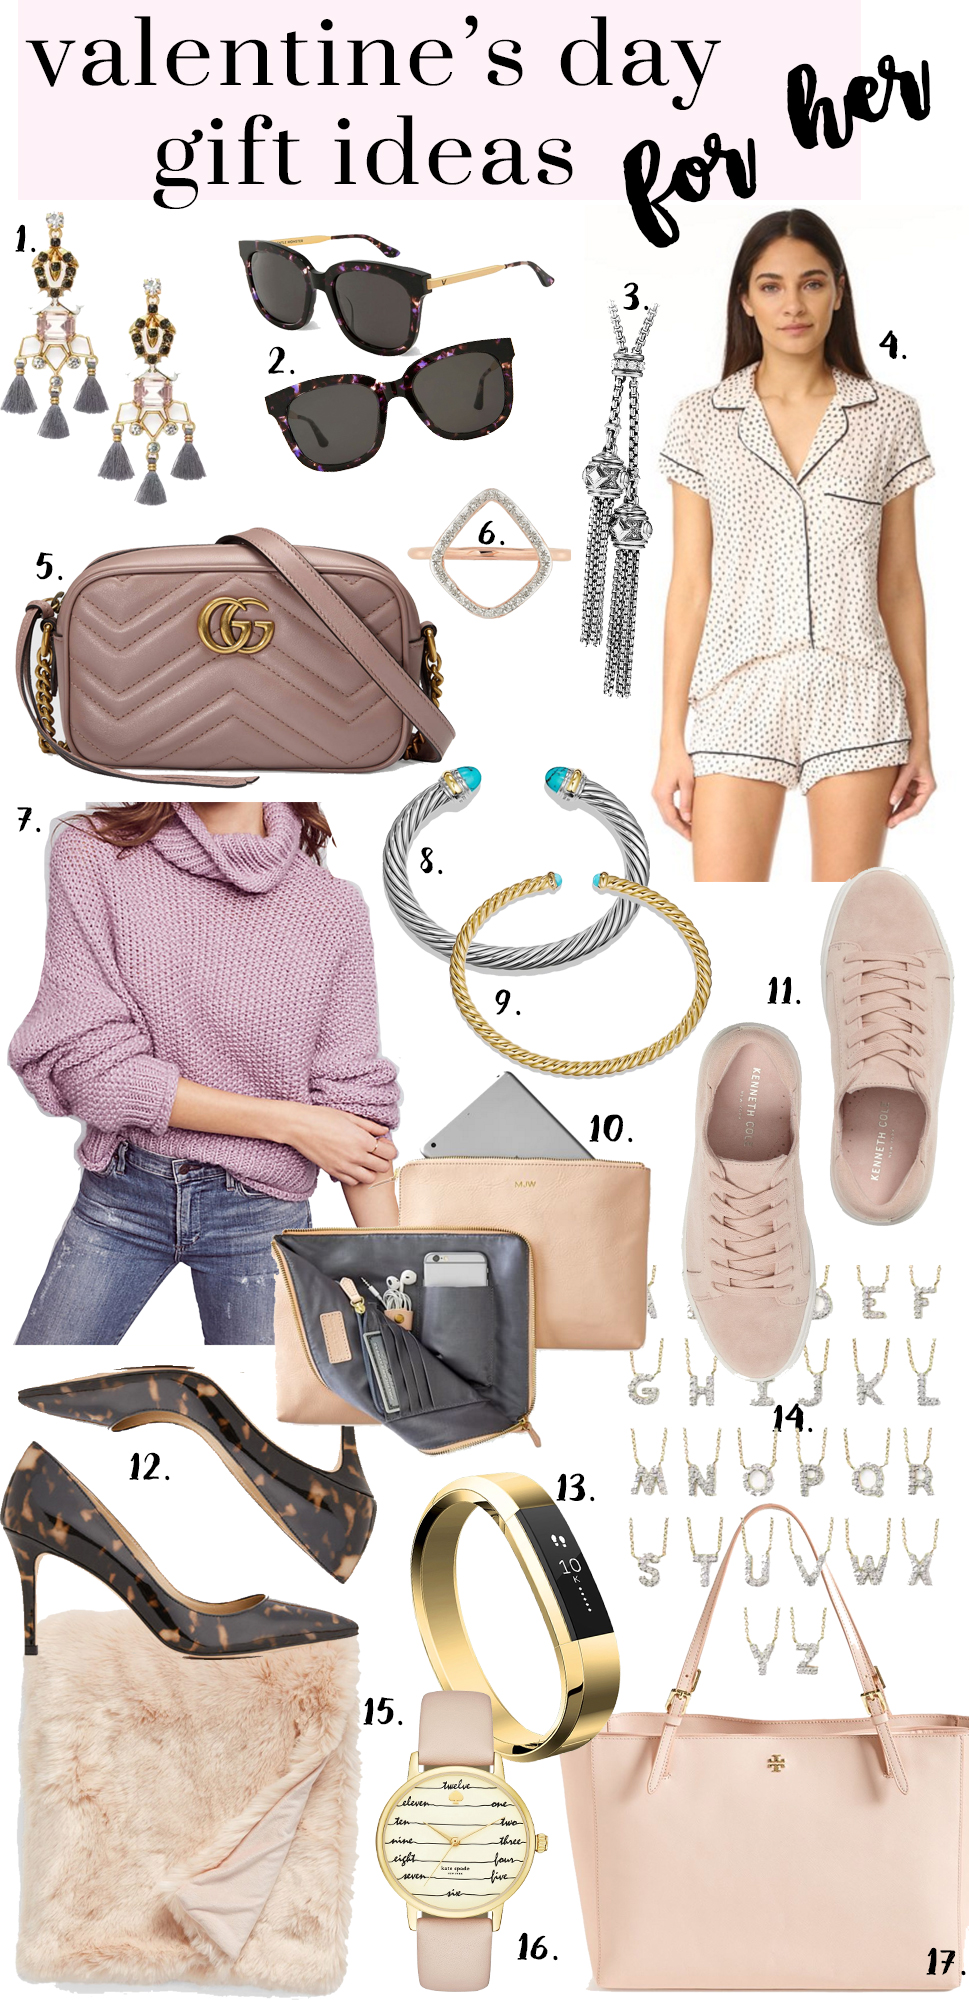 Valentine's Day Gifts for Her:: Valentine's Day Gift Guide Ft. Tory Burch, David Yurman, Gucci, Stella & Dot, Ann Taylor, Mark & Graham